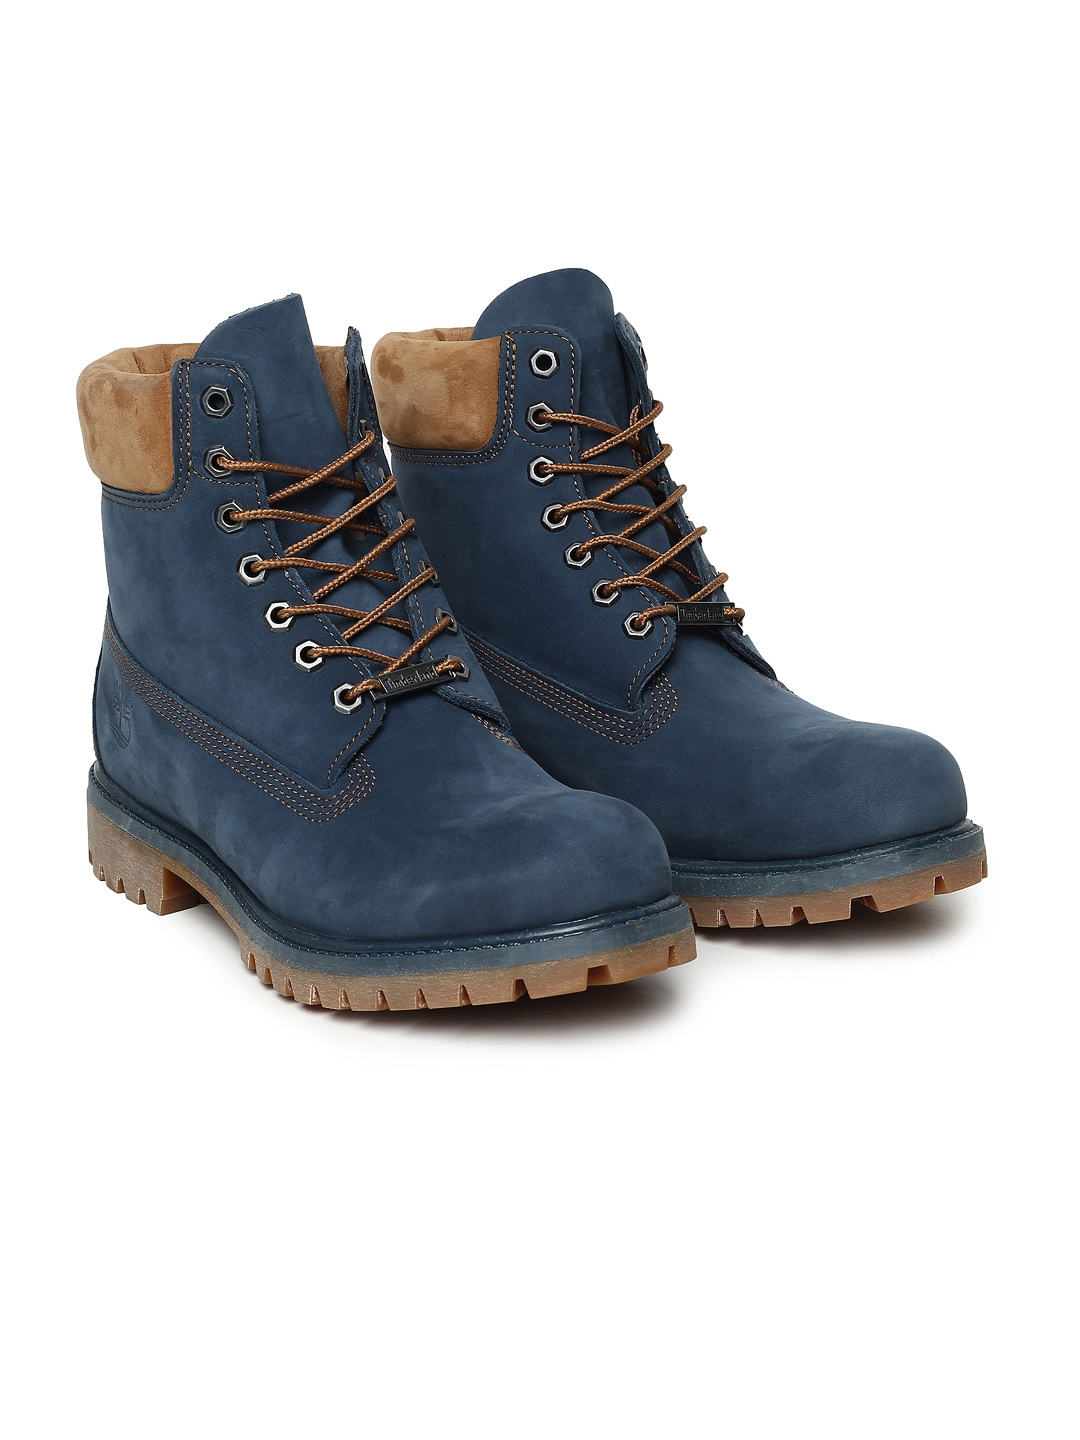 63e9a75d9c68 Timberland - Buy Timberland Shoes